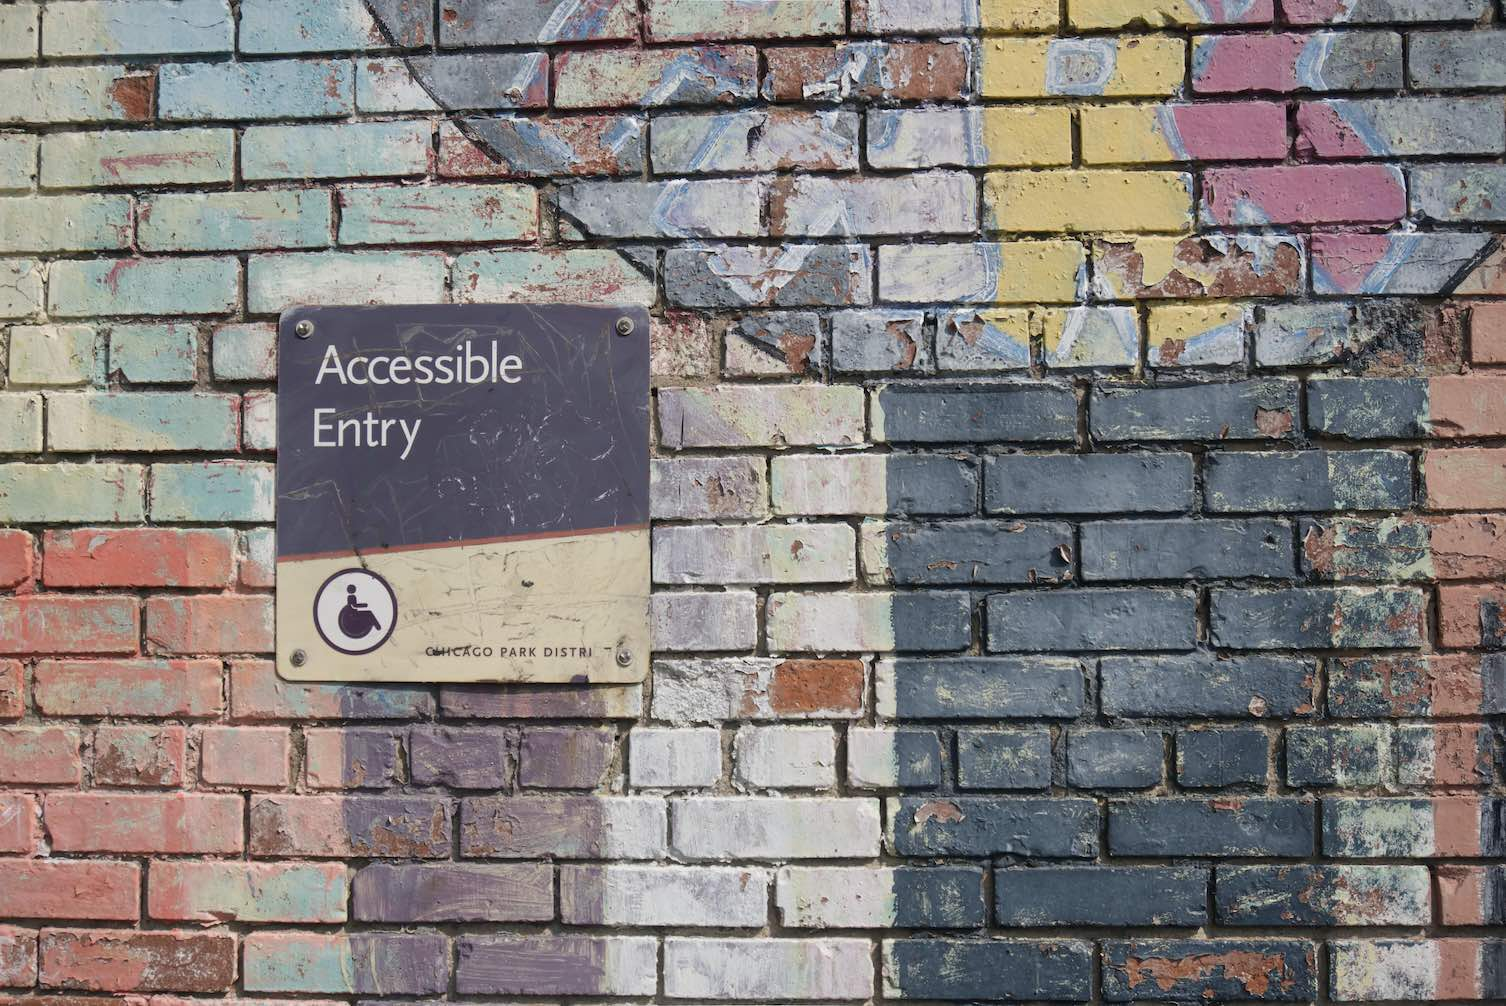 Accessible Entry Sign on a brick wall